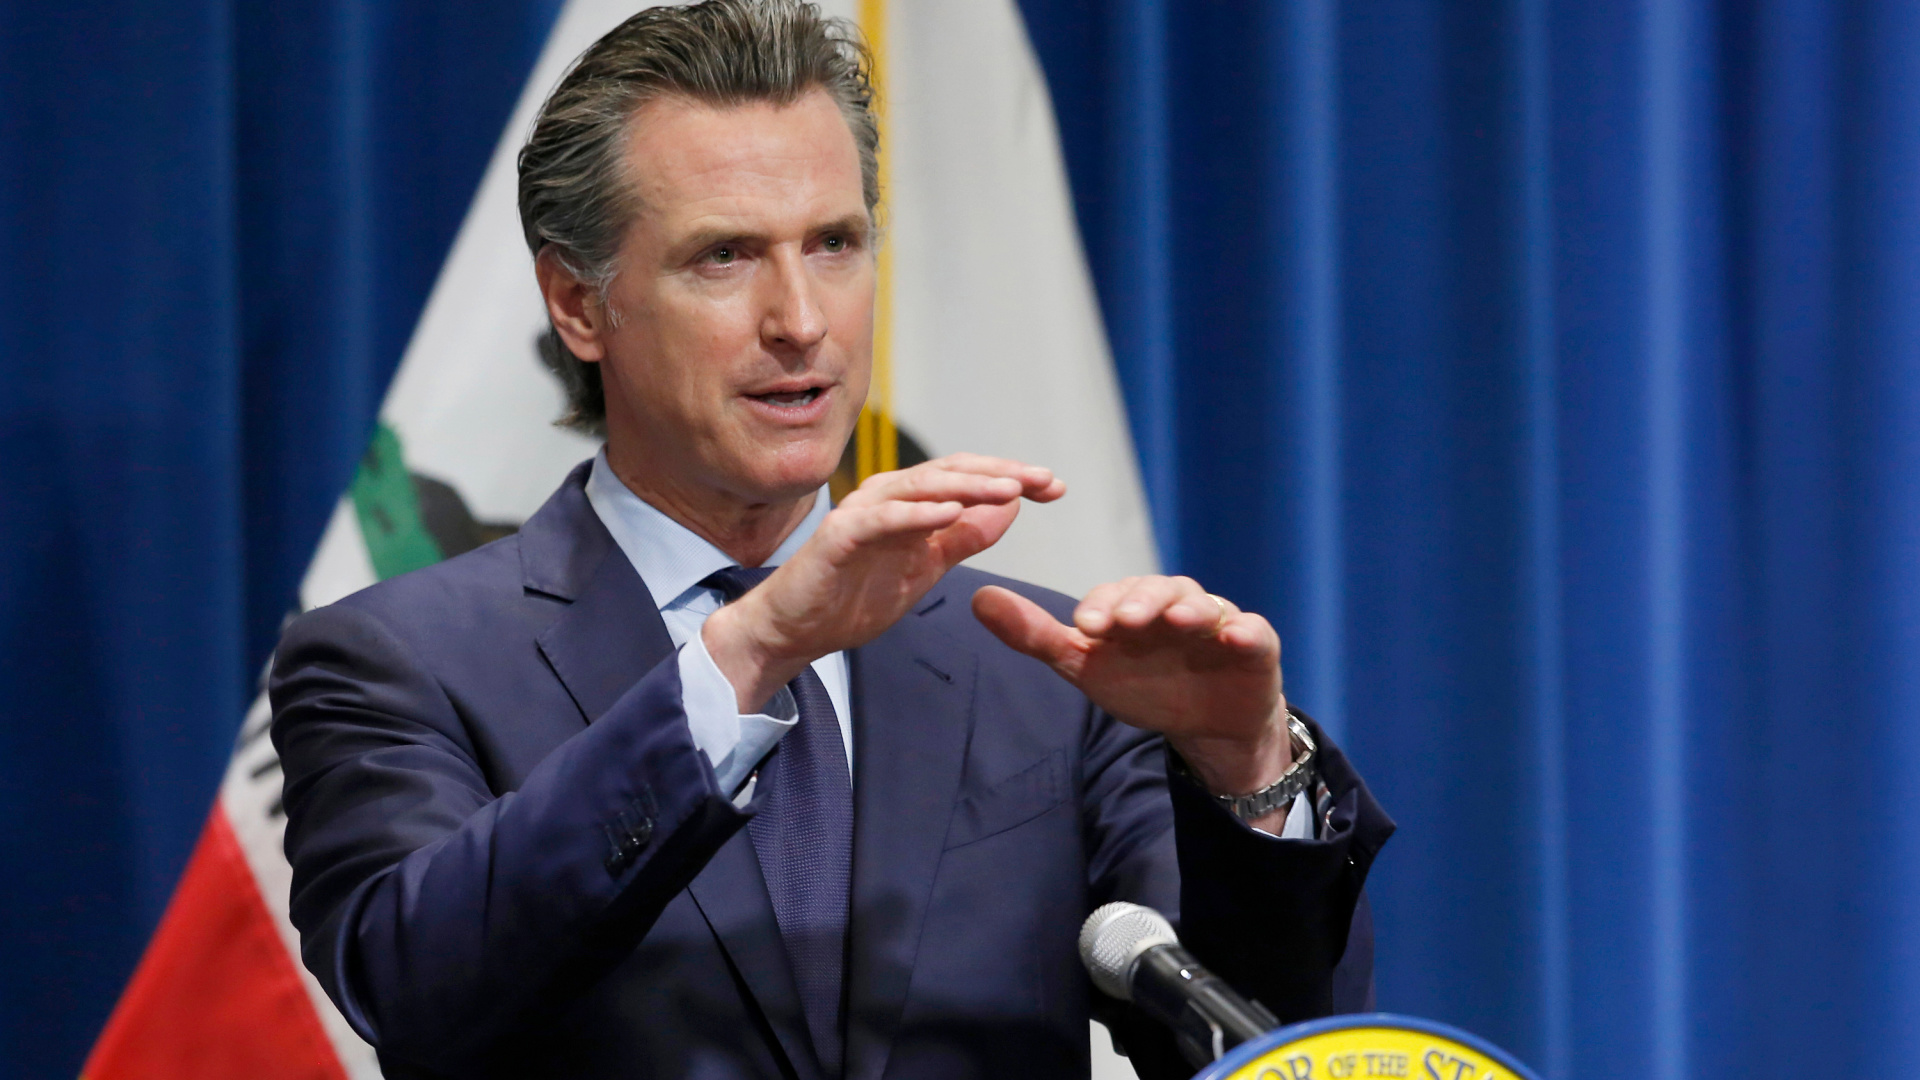 Gov. Gavin Newsom is seen a year ago, when he discussed his revised 2020-2021 state budget during a news conference in Sacramento on May 14, 2020. (Rich Pedroncelli / Associated Press)